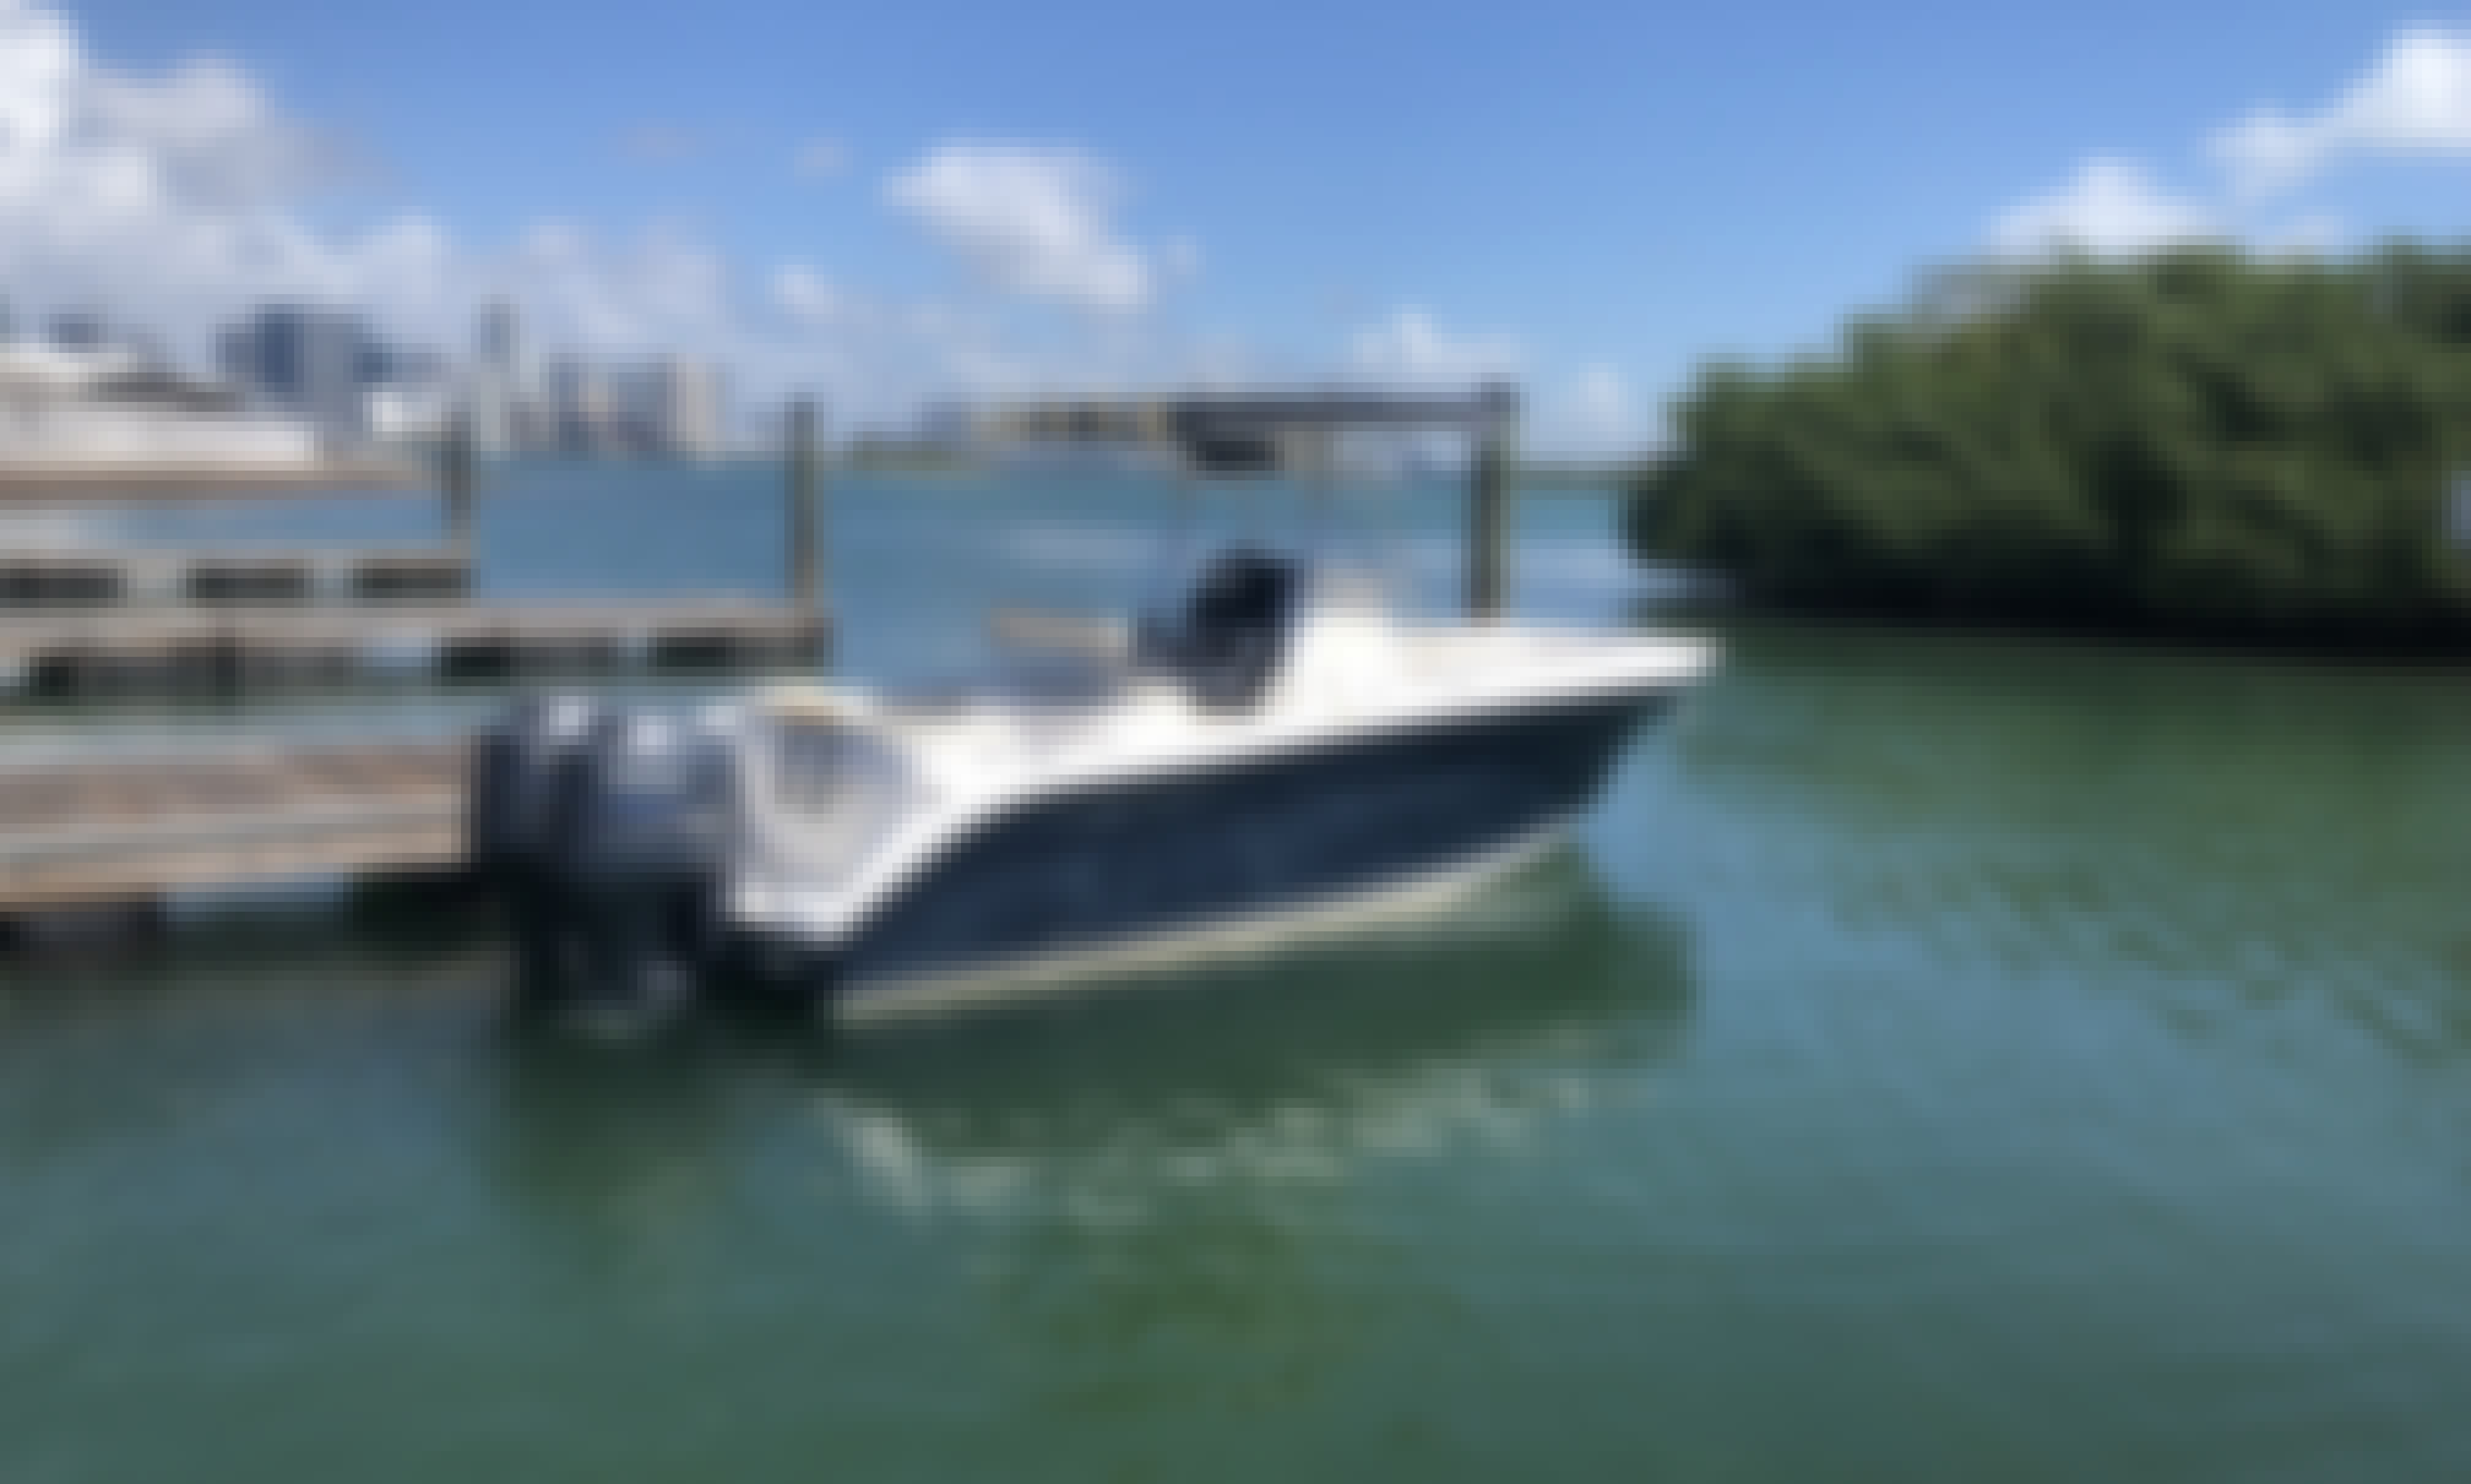 Power center console 24ft- 2-150hp  in Key Biscayne